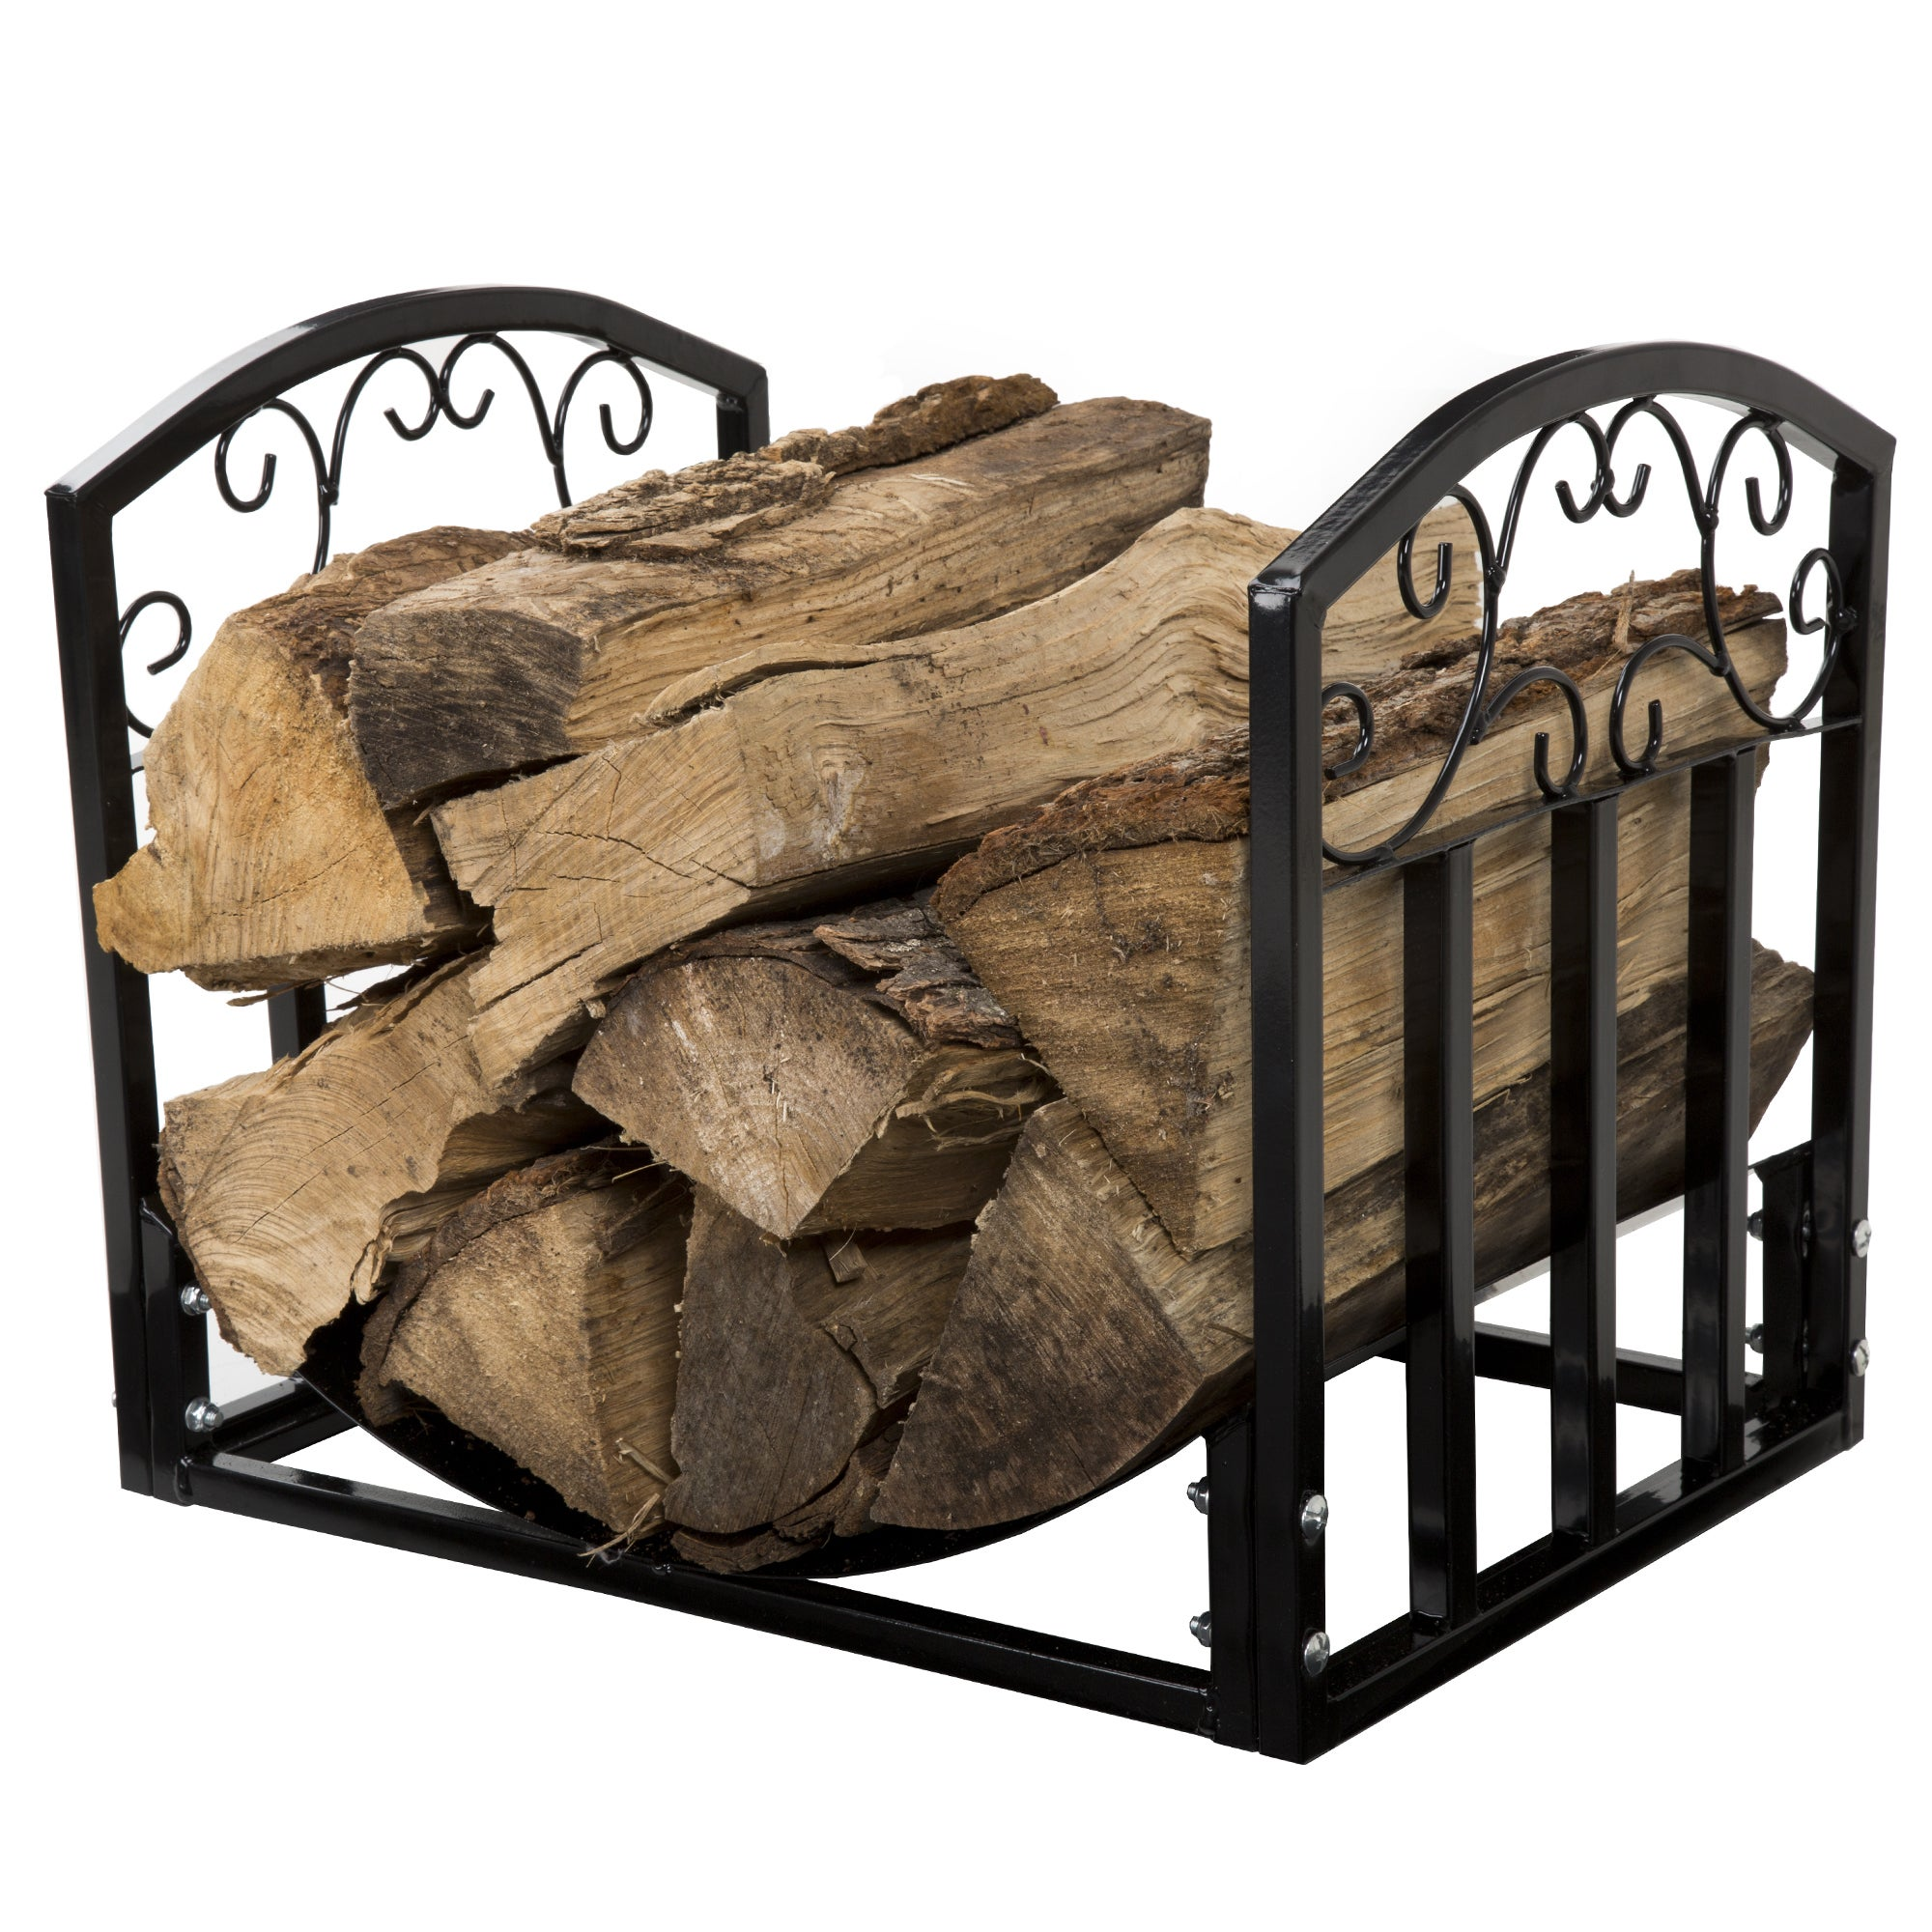 Trademark Global Pure Garden Fireplace Log Bin with Scrol...